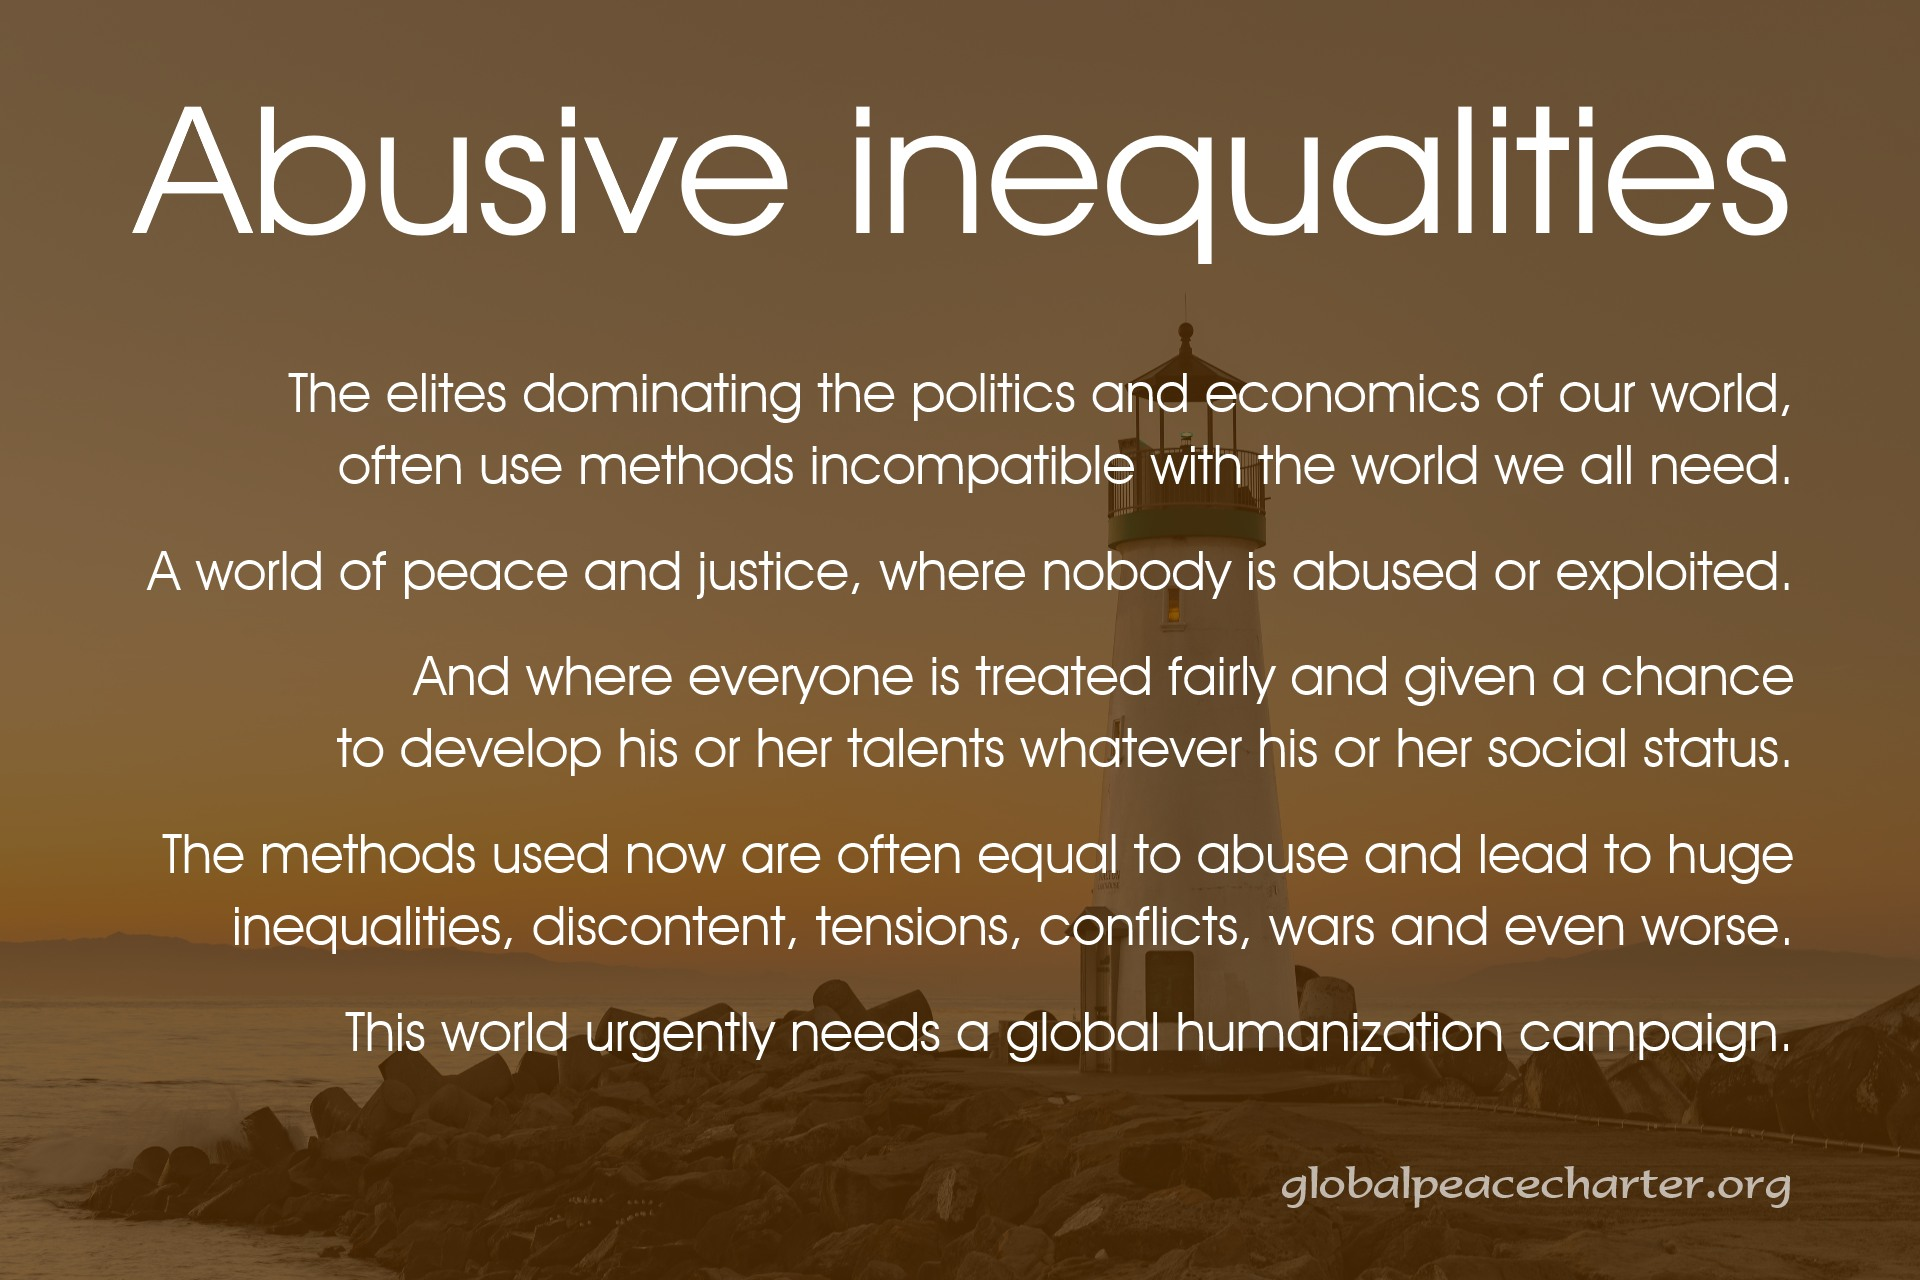 Abusive inequalities